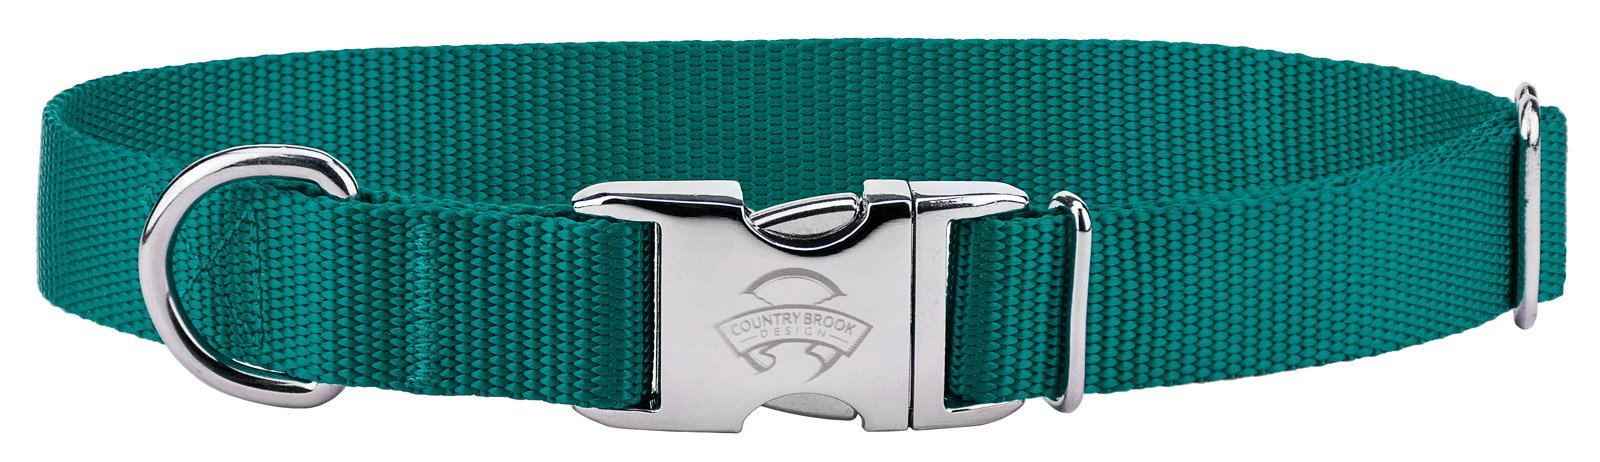 10 - Country Brook Design Premium Nylon Dog Collars - Teal - Extra Small by Country Brook Design (Image #1)